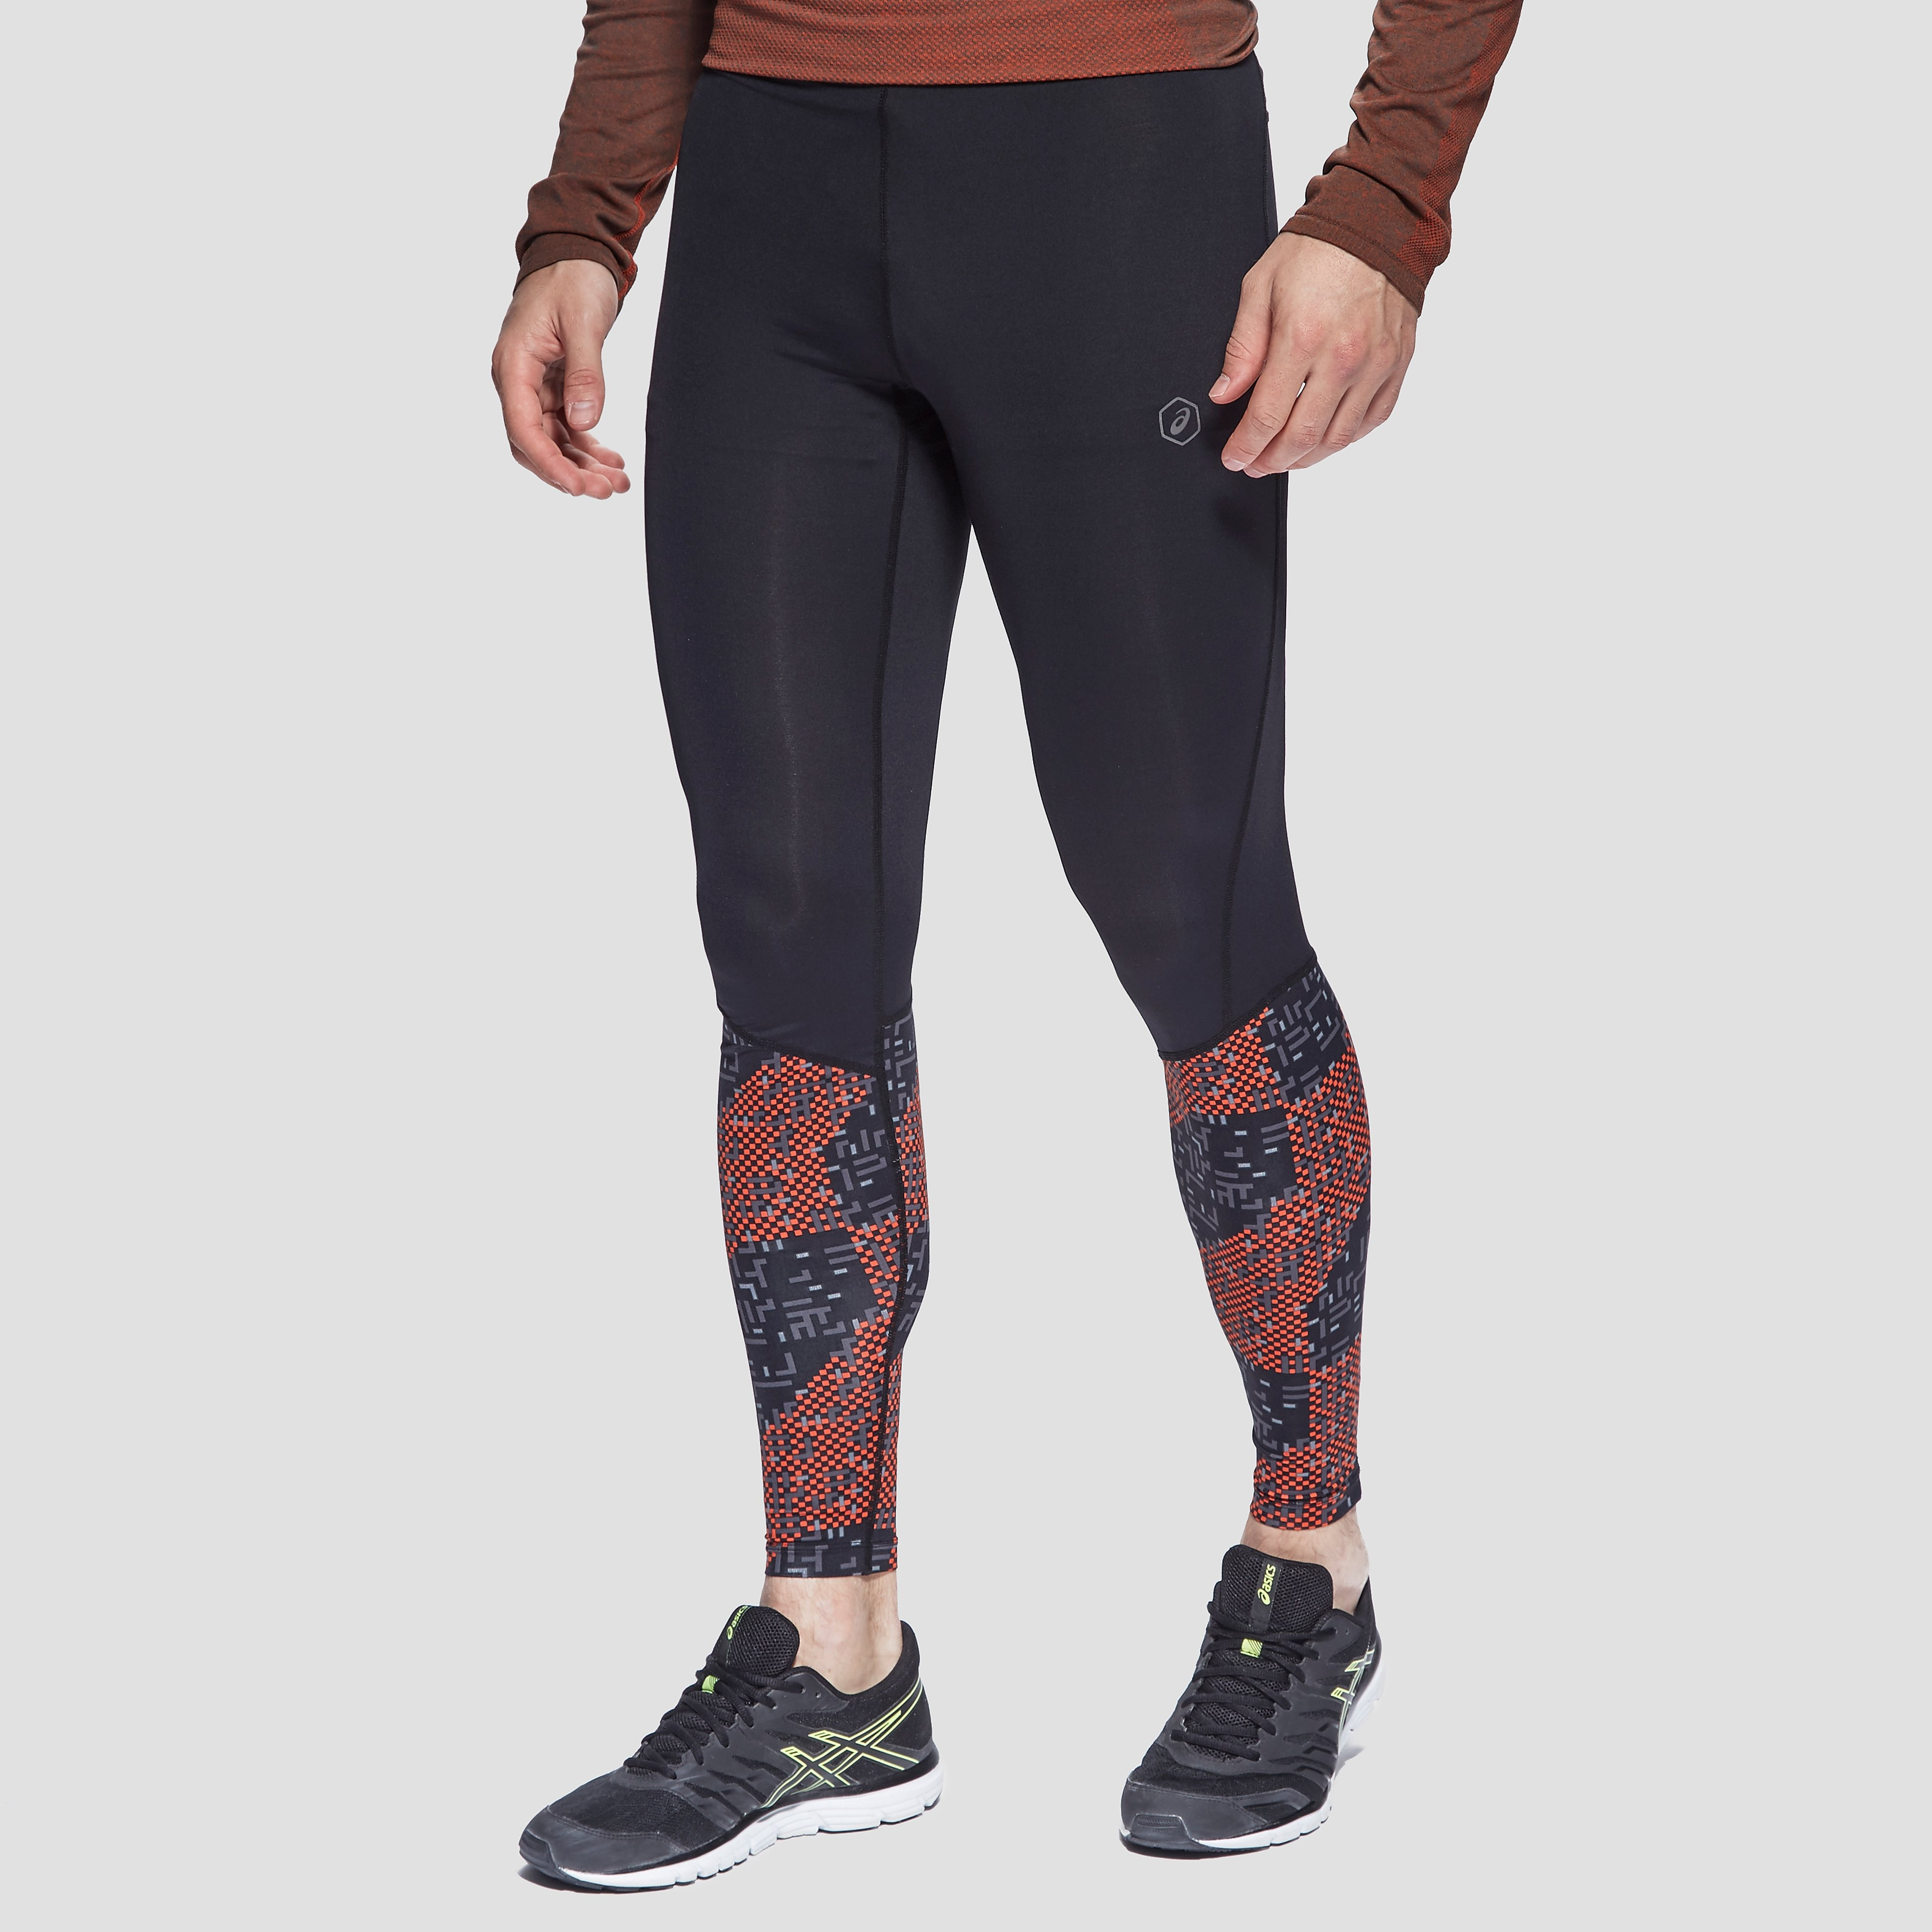 ASICS Men's Race Tight Light Tights